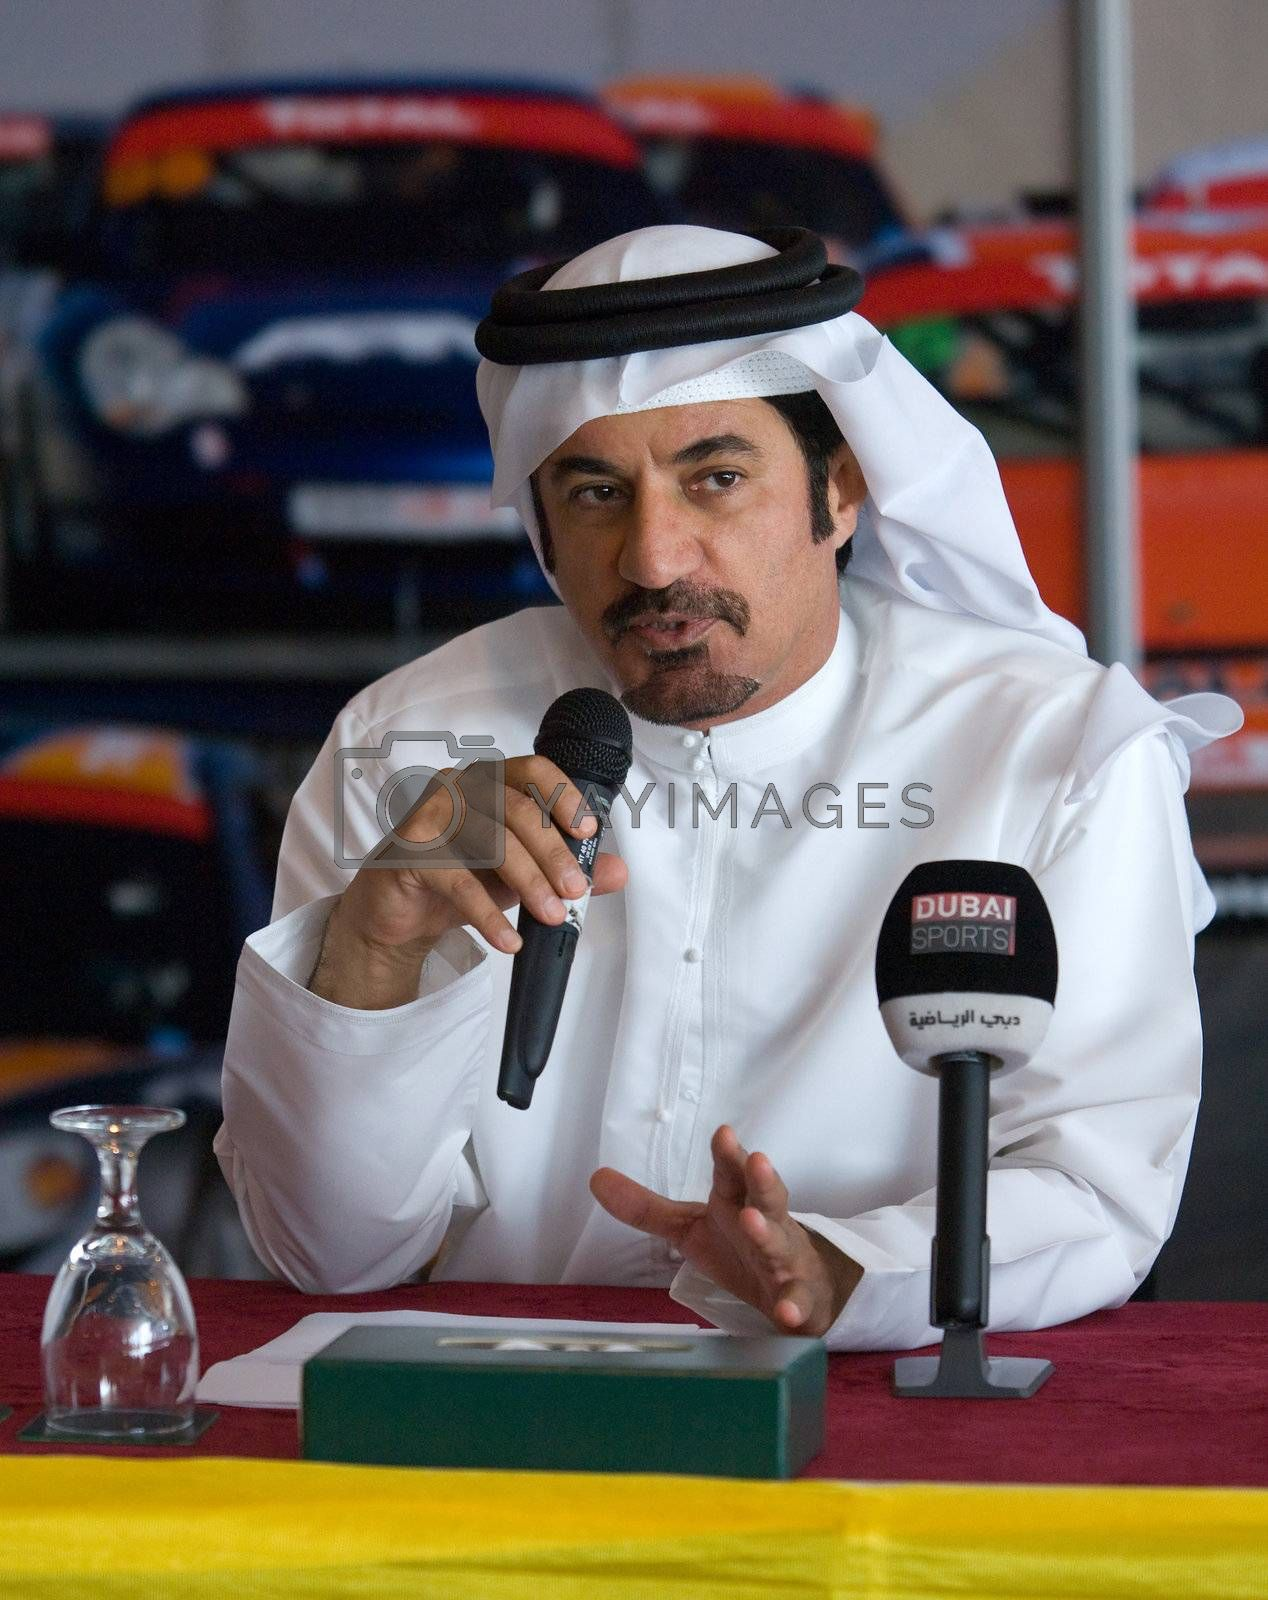 DUBAI - JANUARY 13: Mohammed Bin Sulayem, Vice-President for Sport of FIA, speaking at the press conference for the 2012 Dunlop 24 Hour Race at Dubai Autodrome on January 13, 2012.